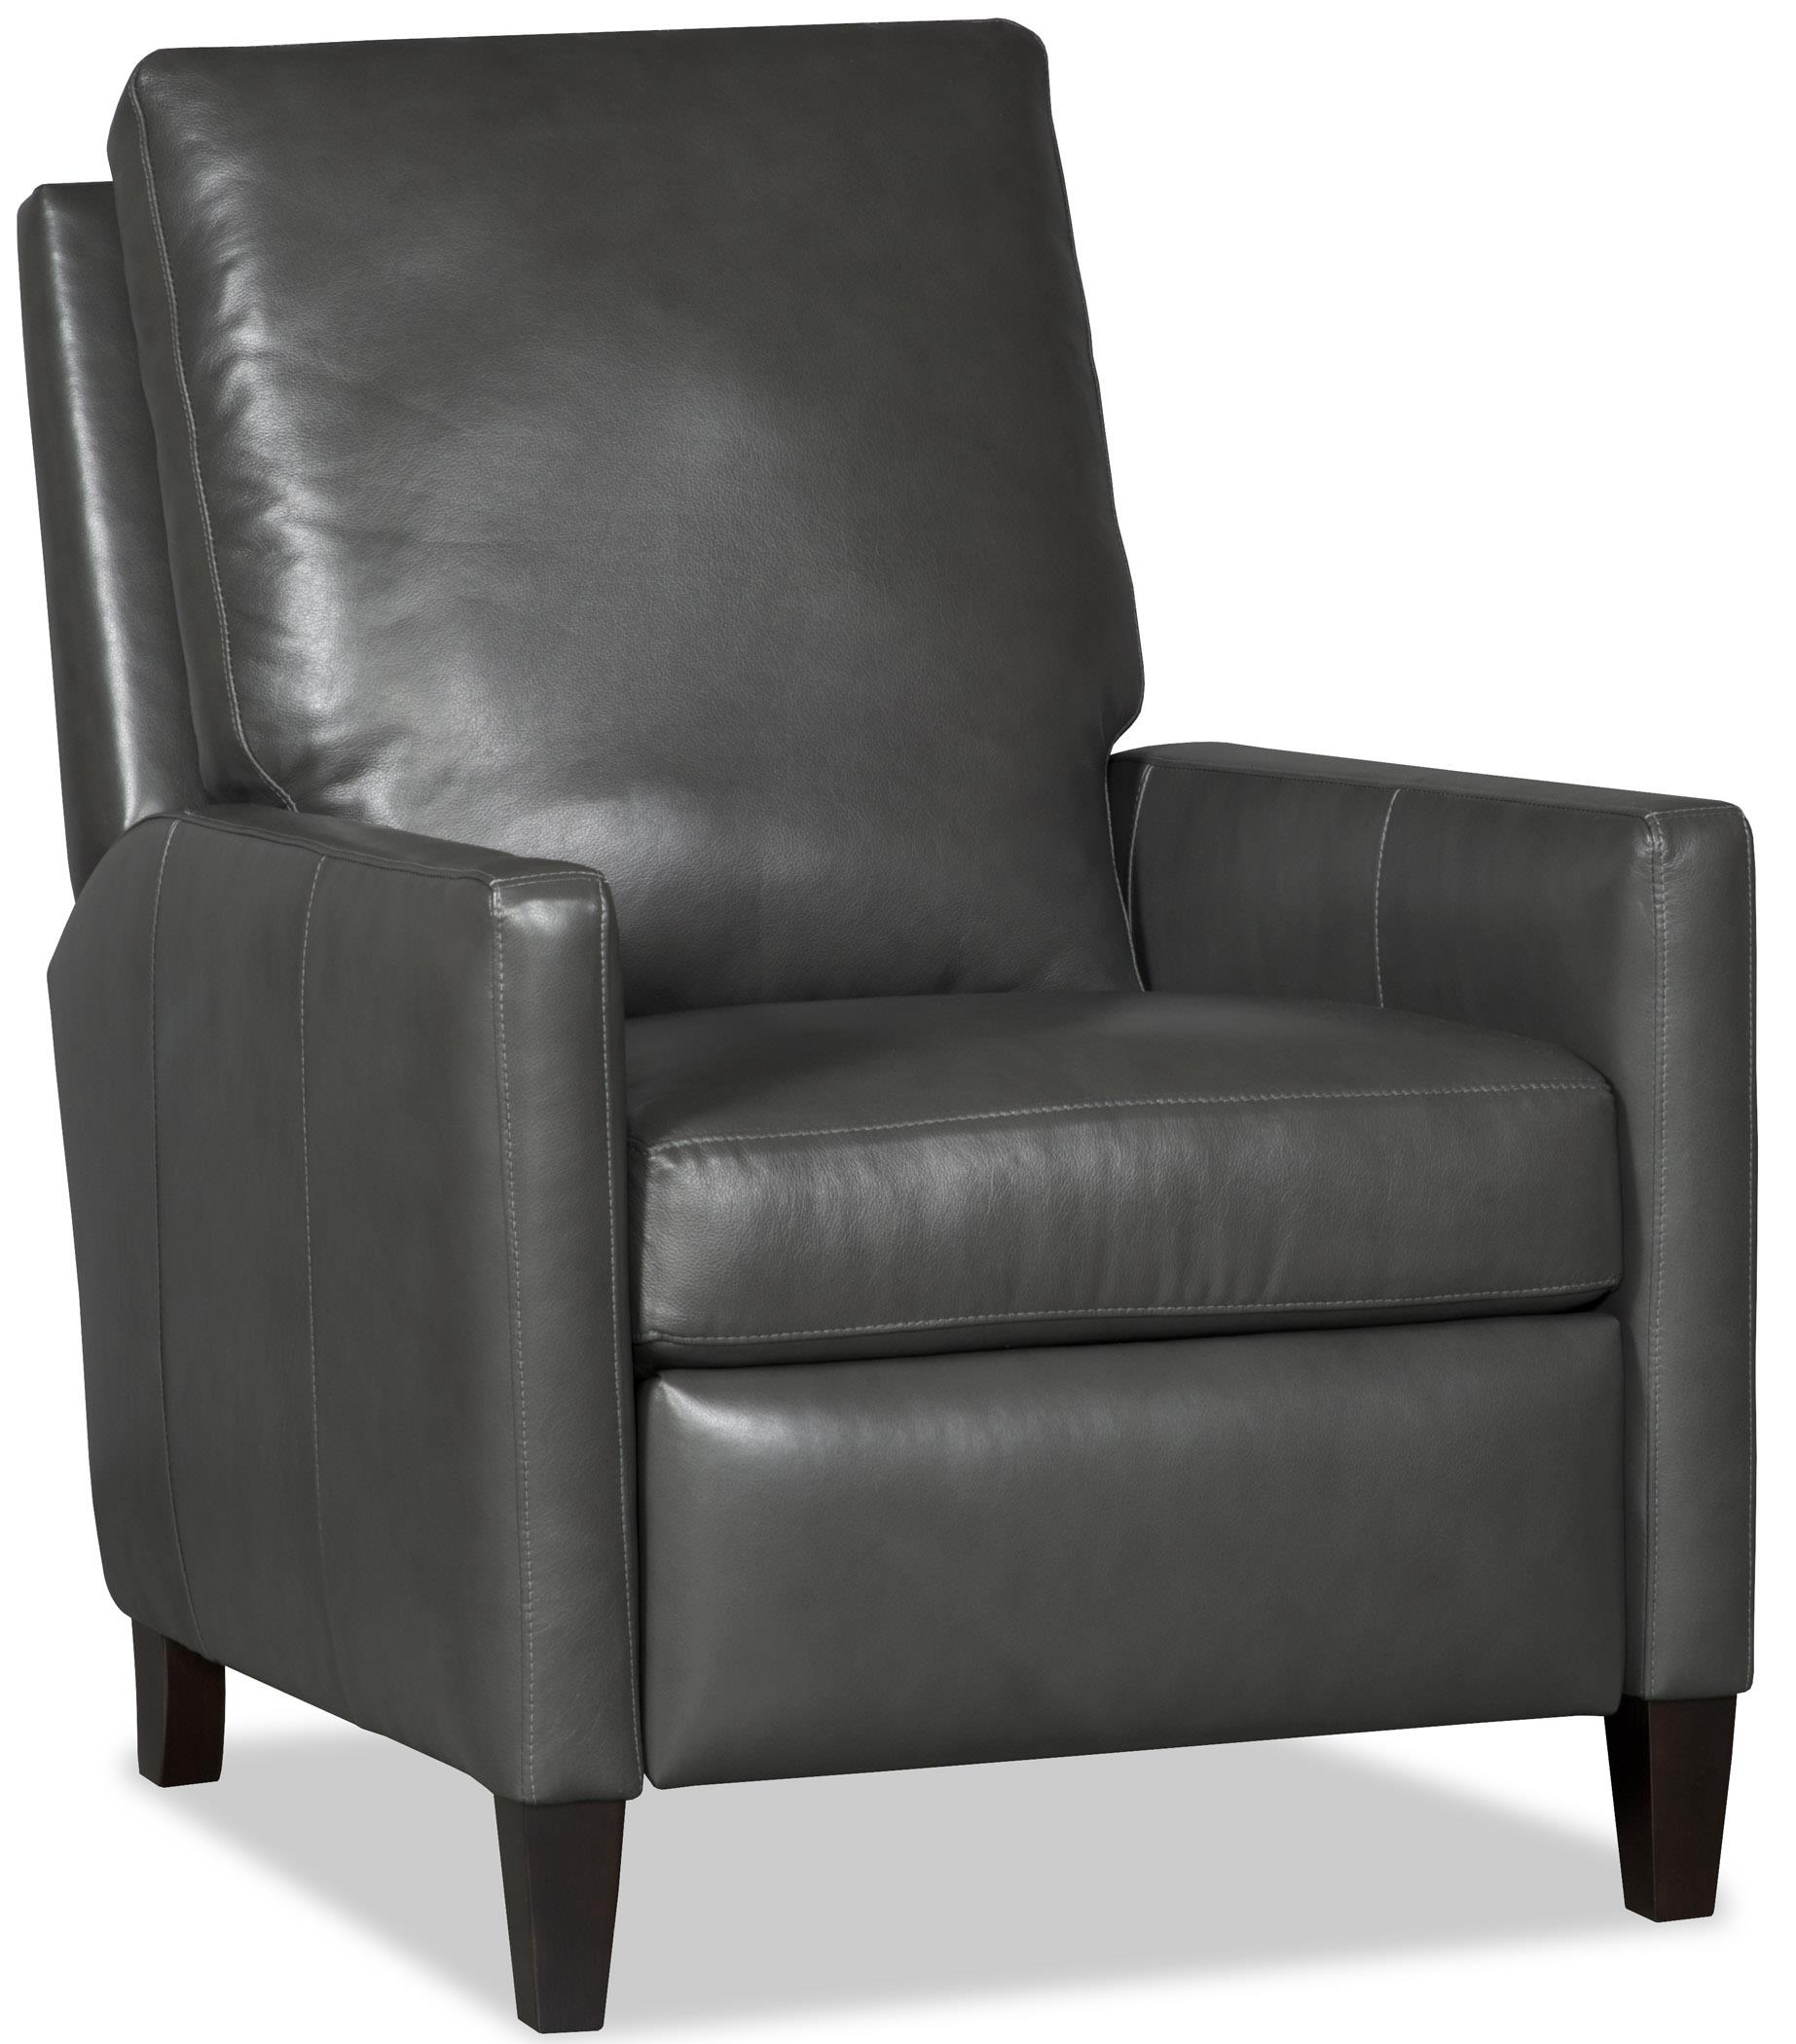 Chairs That Recline High Leg Recliner by Bradington Young at Baer's Furniture